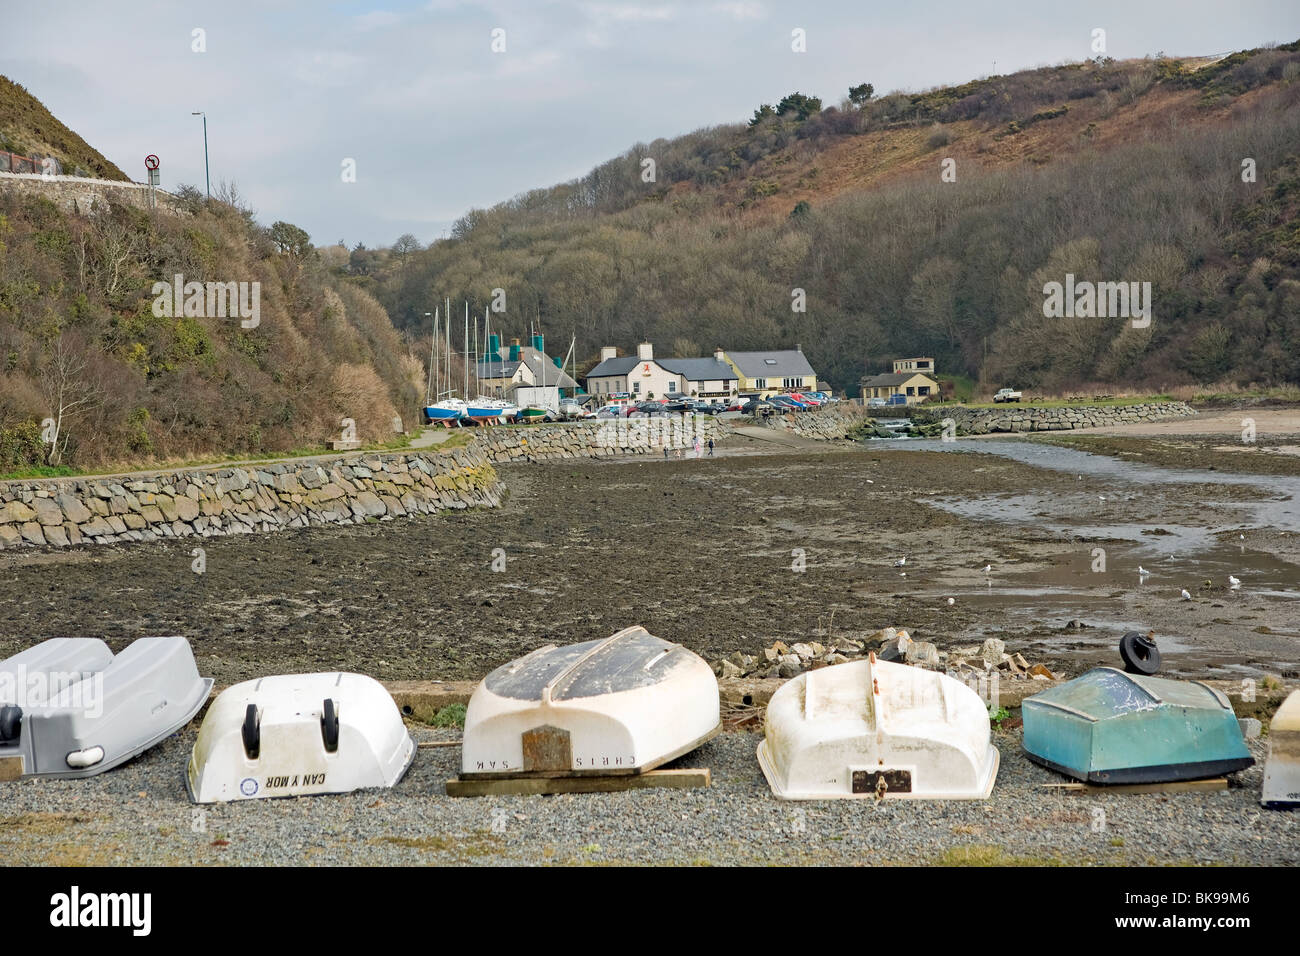 Solva estuary in pembrokeshire west wales - Stock Image